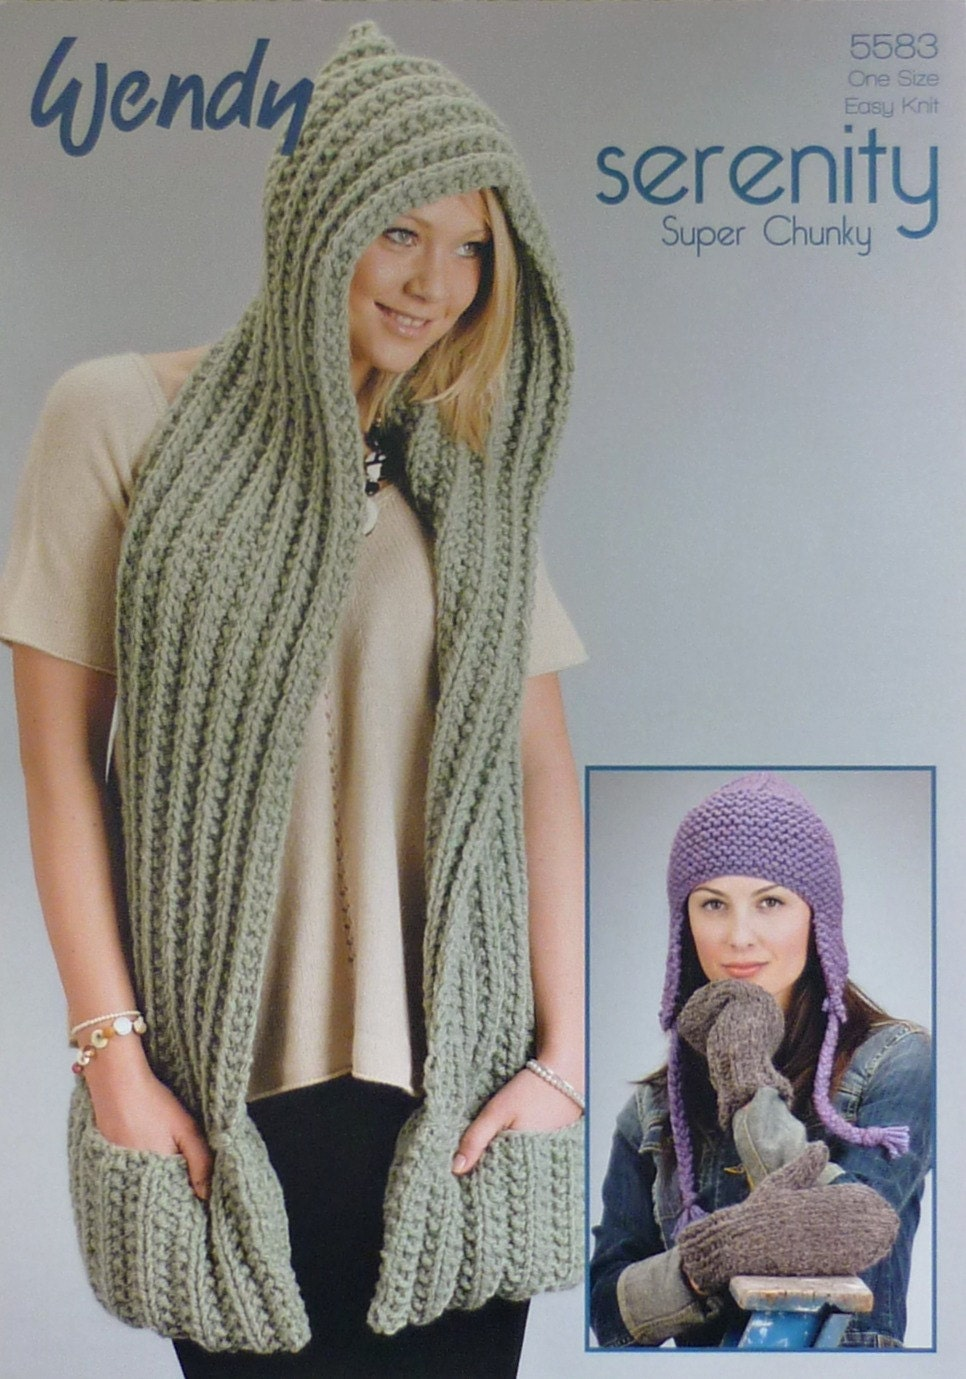 Knitting Pattern For Ladies Hood : Womens Knitting Pattern W5583 Ladies Scarf with Hood ...